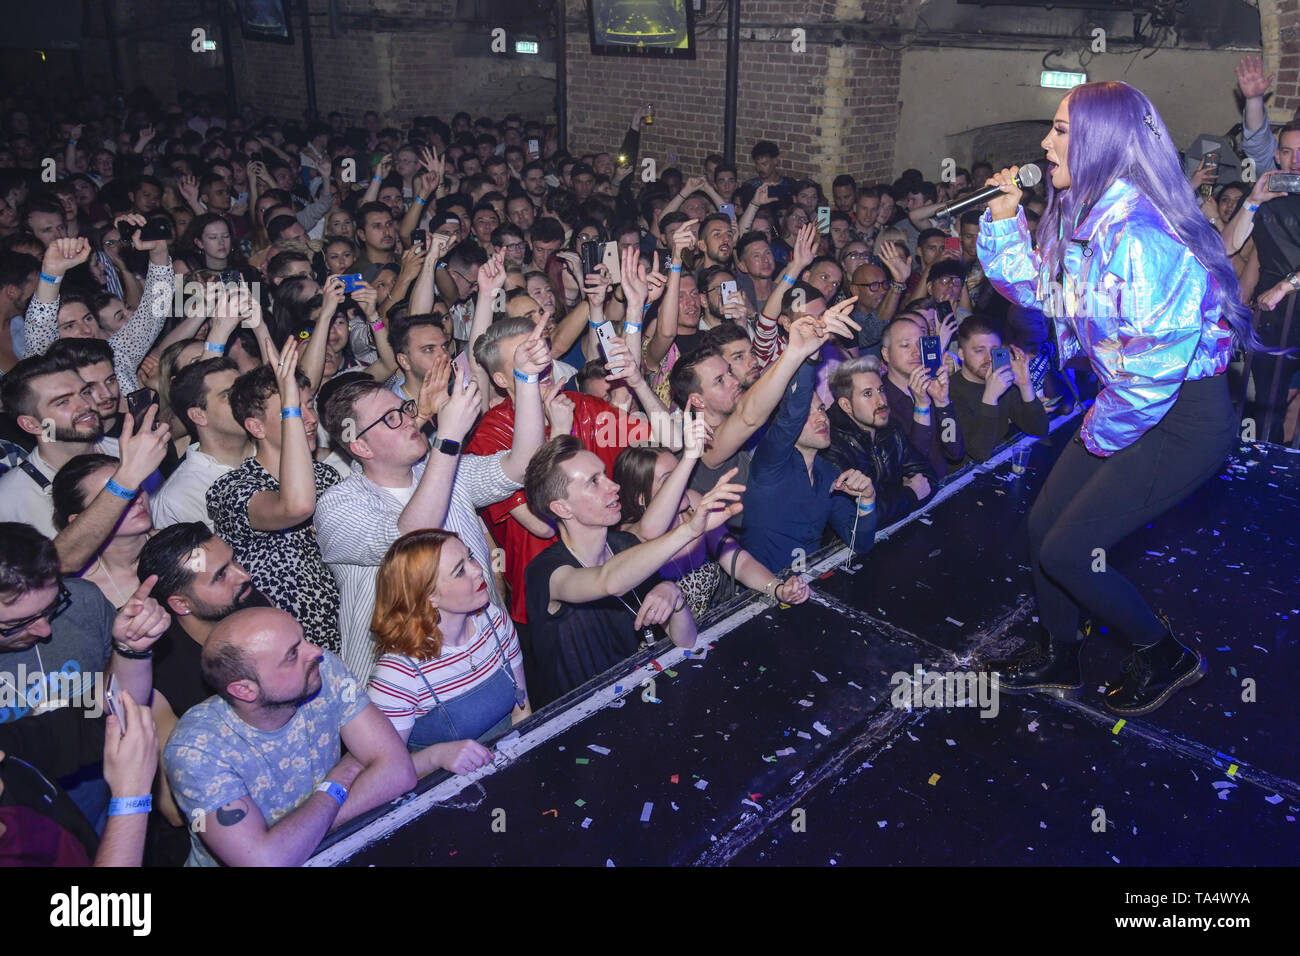 Tulisa launches her new single 'Daddy' at G-A-Y tonight. In a 30-minute set packed with hits and an NDUBZ medley, Tulisa was also joined by 'RuPaul's Drag Race' star Latrice Royale who had performed earlier that evening.  Featuring: Tulisa Where: London, United Kingdom When: 21 Apr 2019 Credit: Chris Jepson/WENN.com - Stock Image